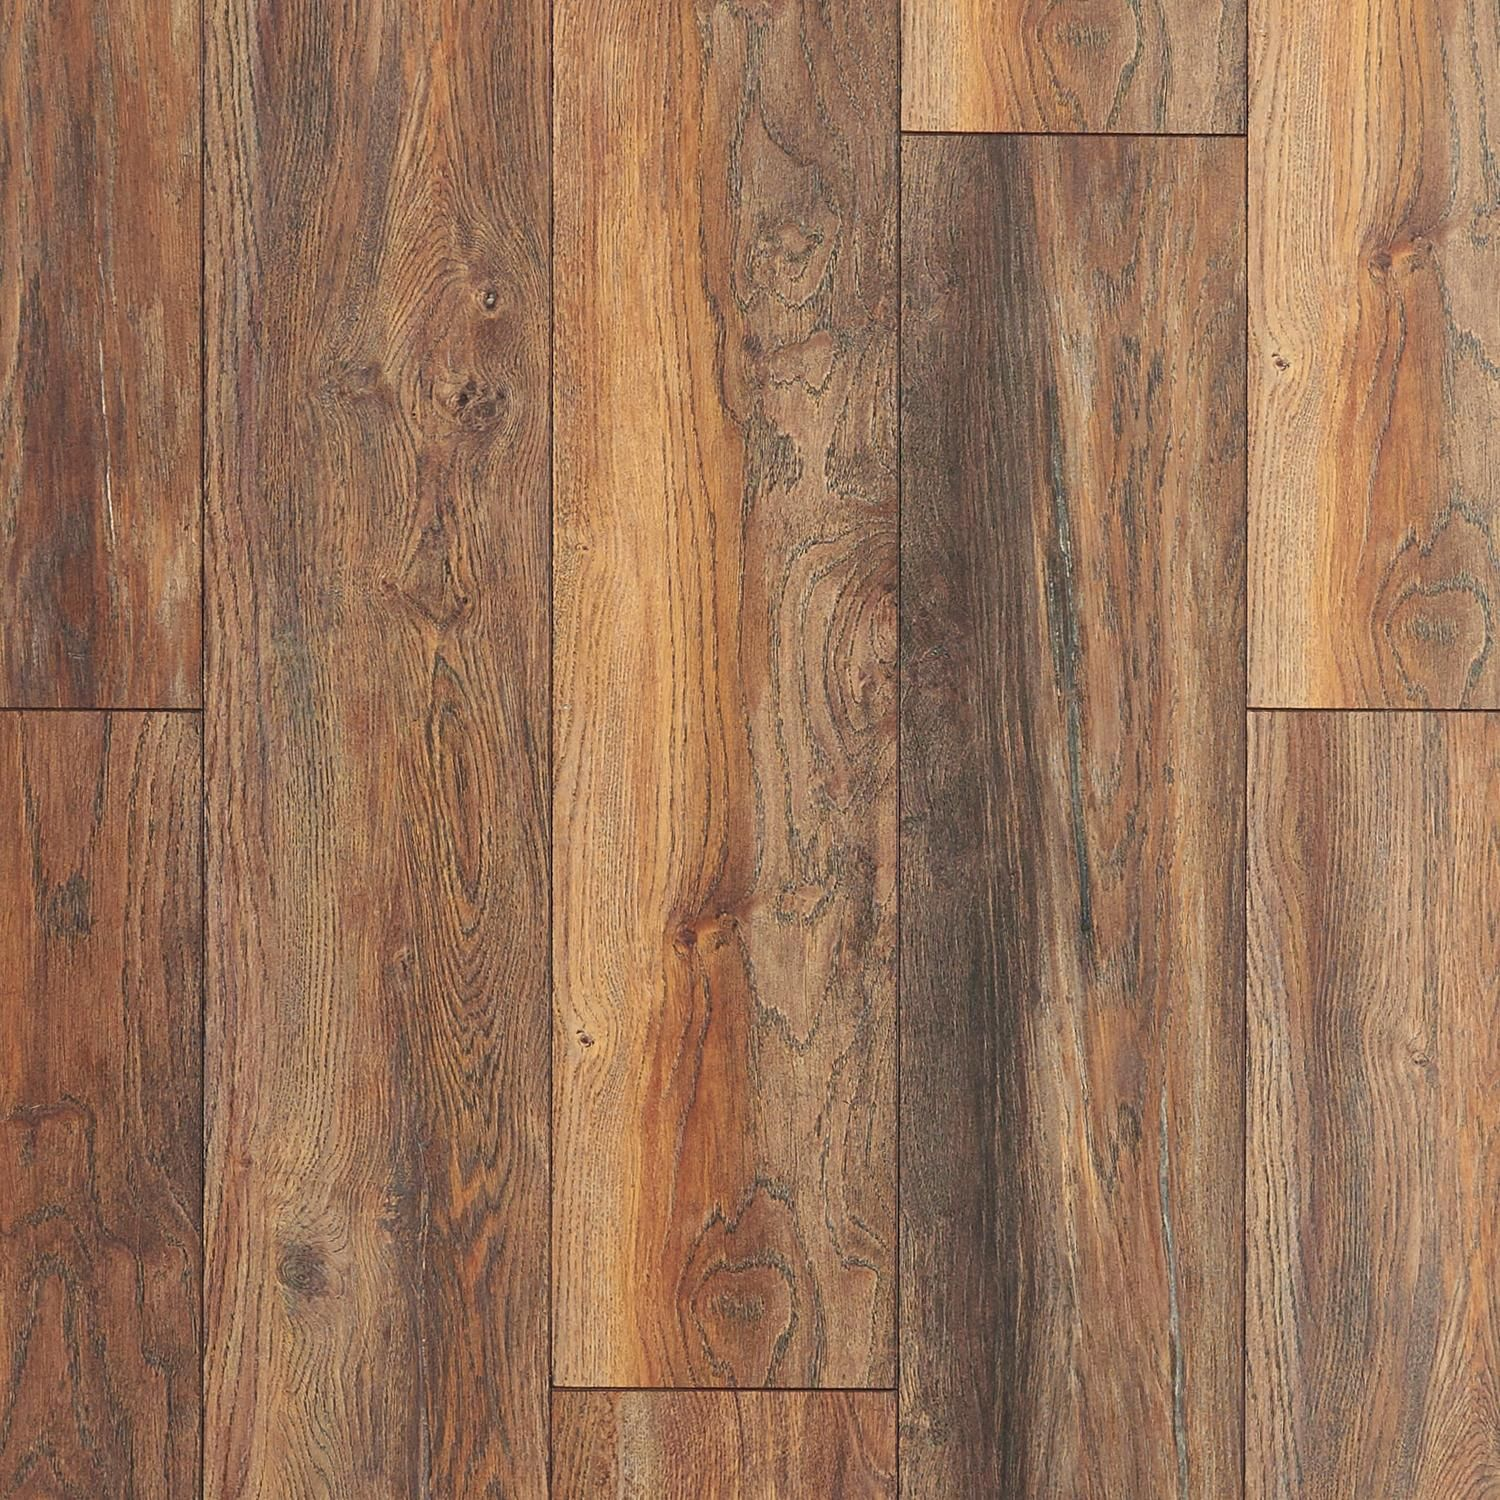 American Spirit Port Chester Oak Laminate Floor Decor Oak Laminate Flooring Oak Laminate Flooring